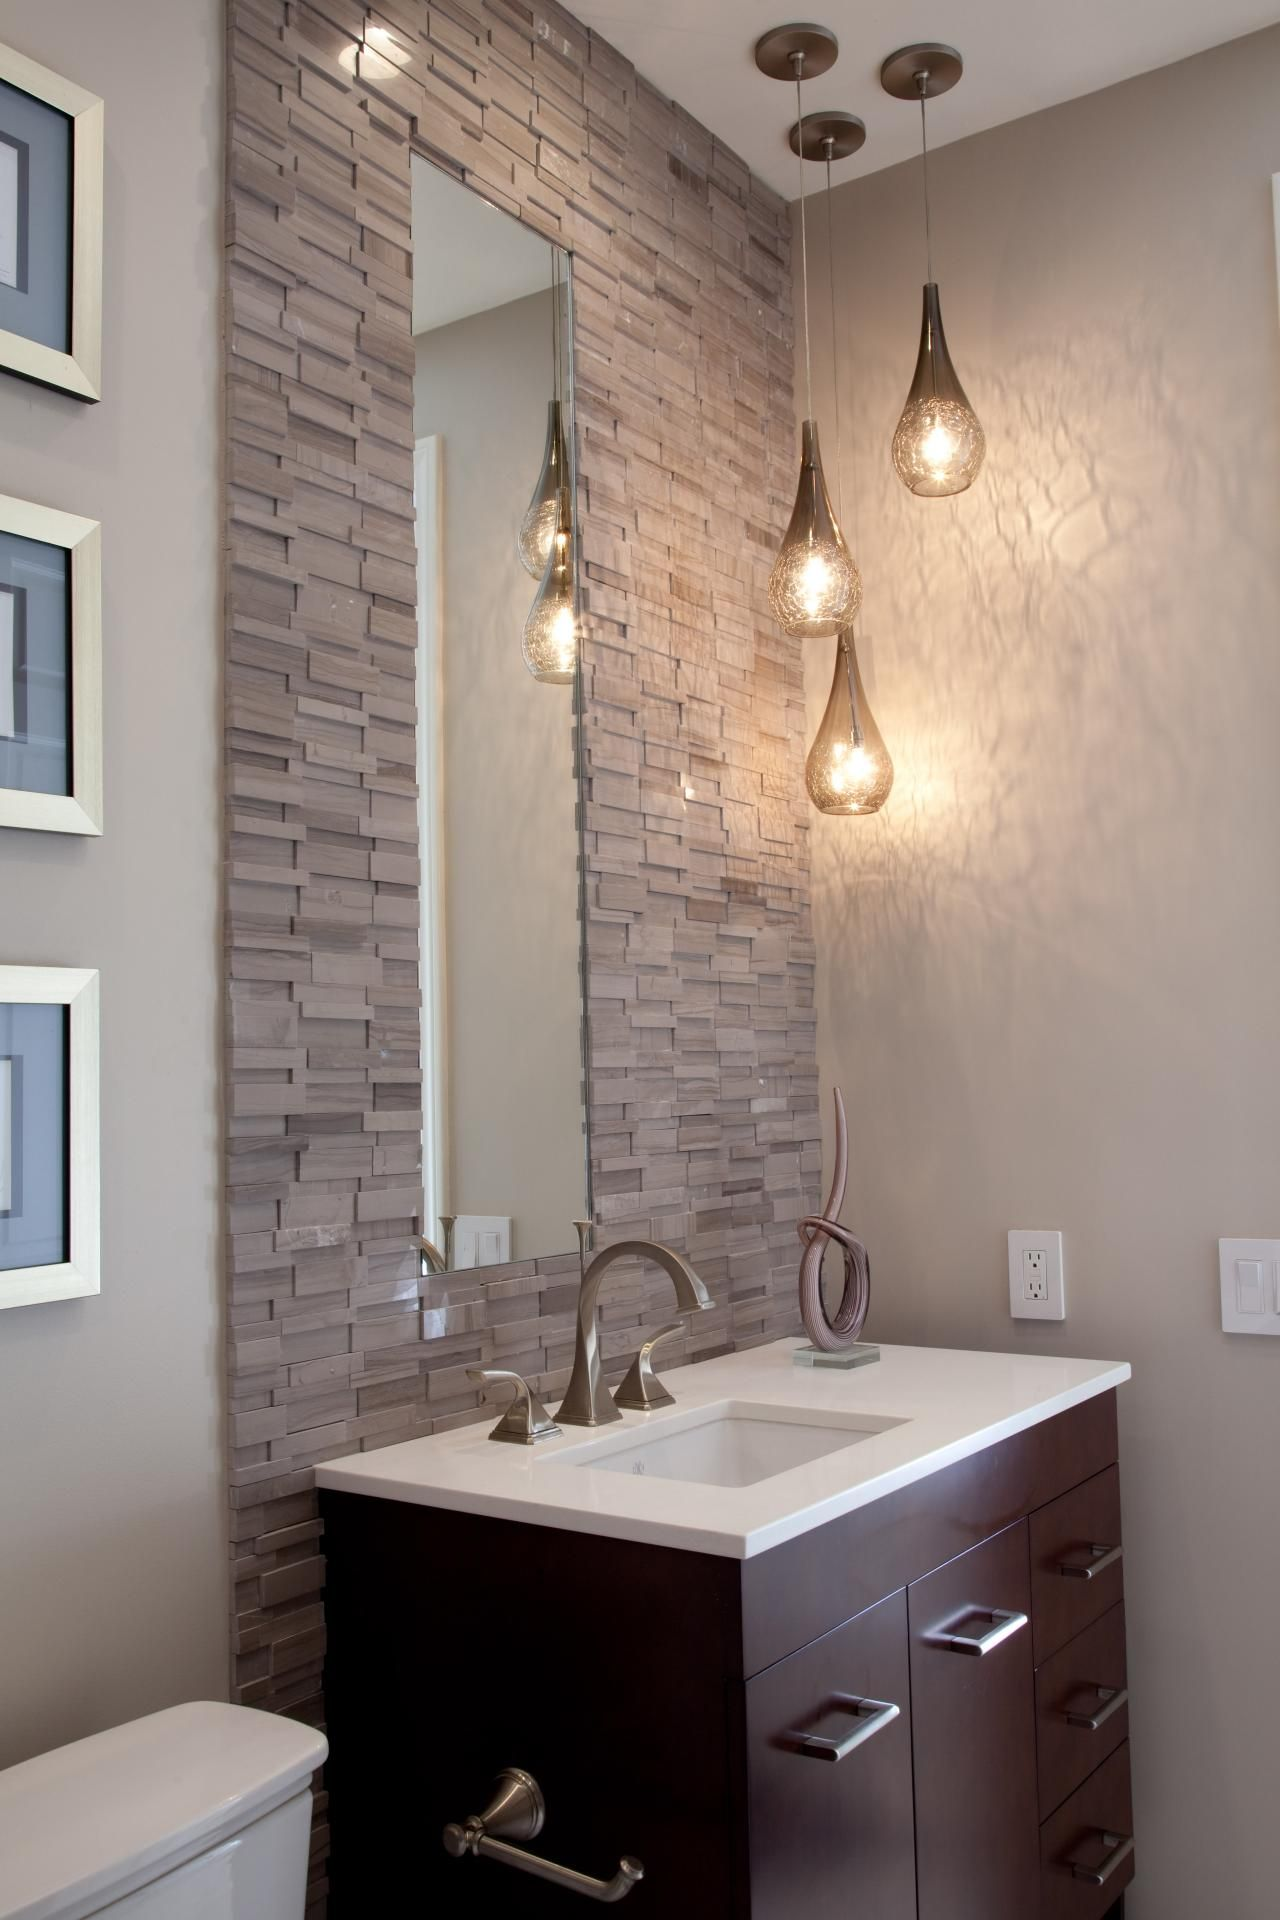 NKBA Bath Trends NKBA Kitchen Bath Trend Awards HGTV -  fort lauderdale bathroom mirror light